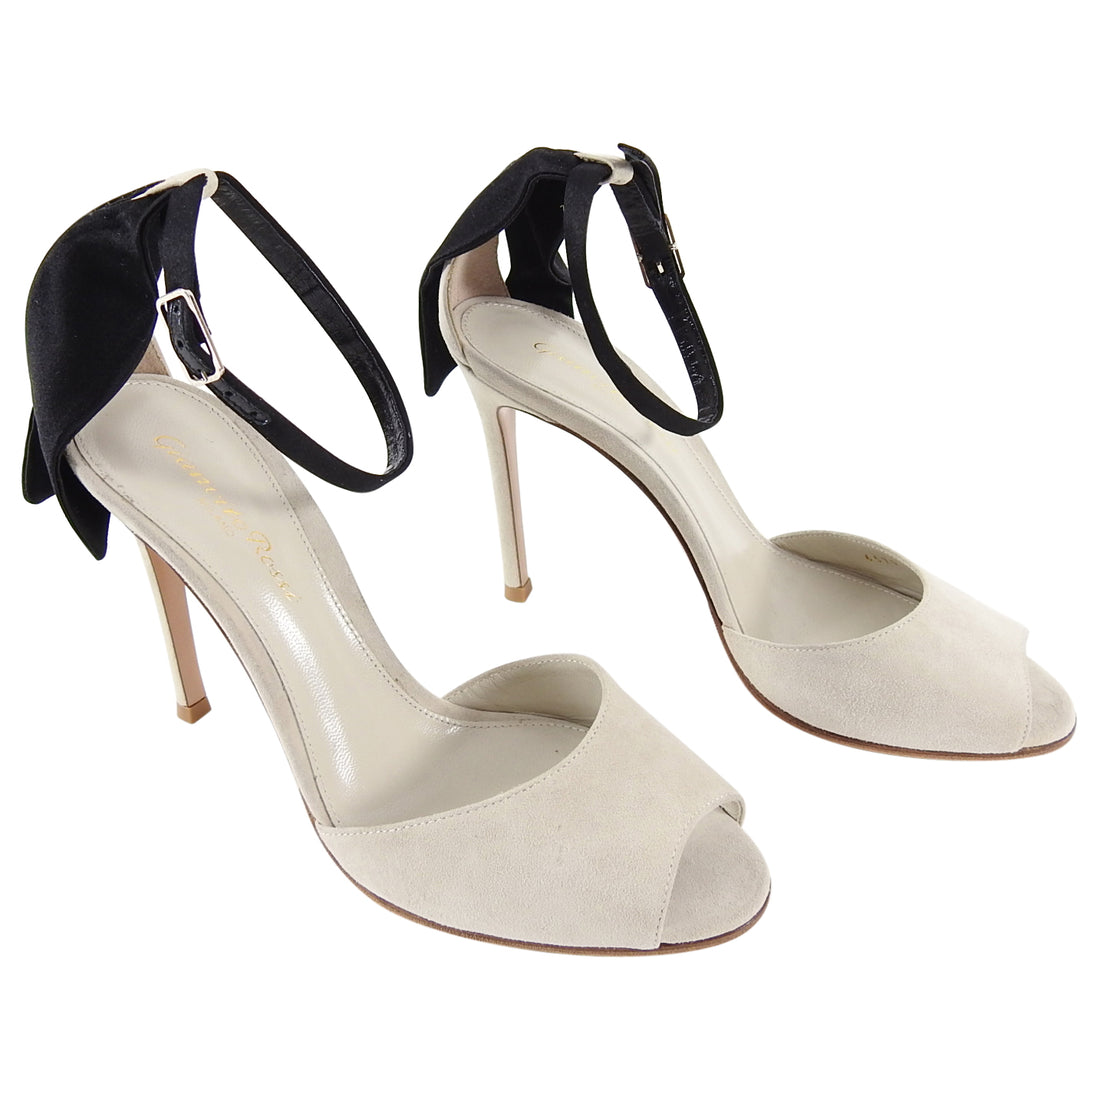 Gianvito Rossi Light Grey Suede Heels with Black Satin Detail - 36 / 5.5